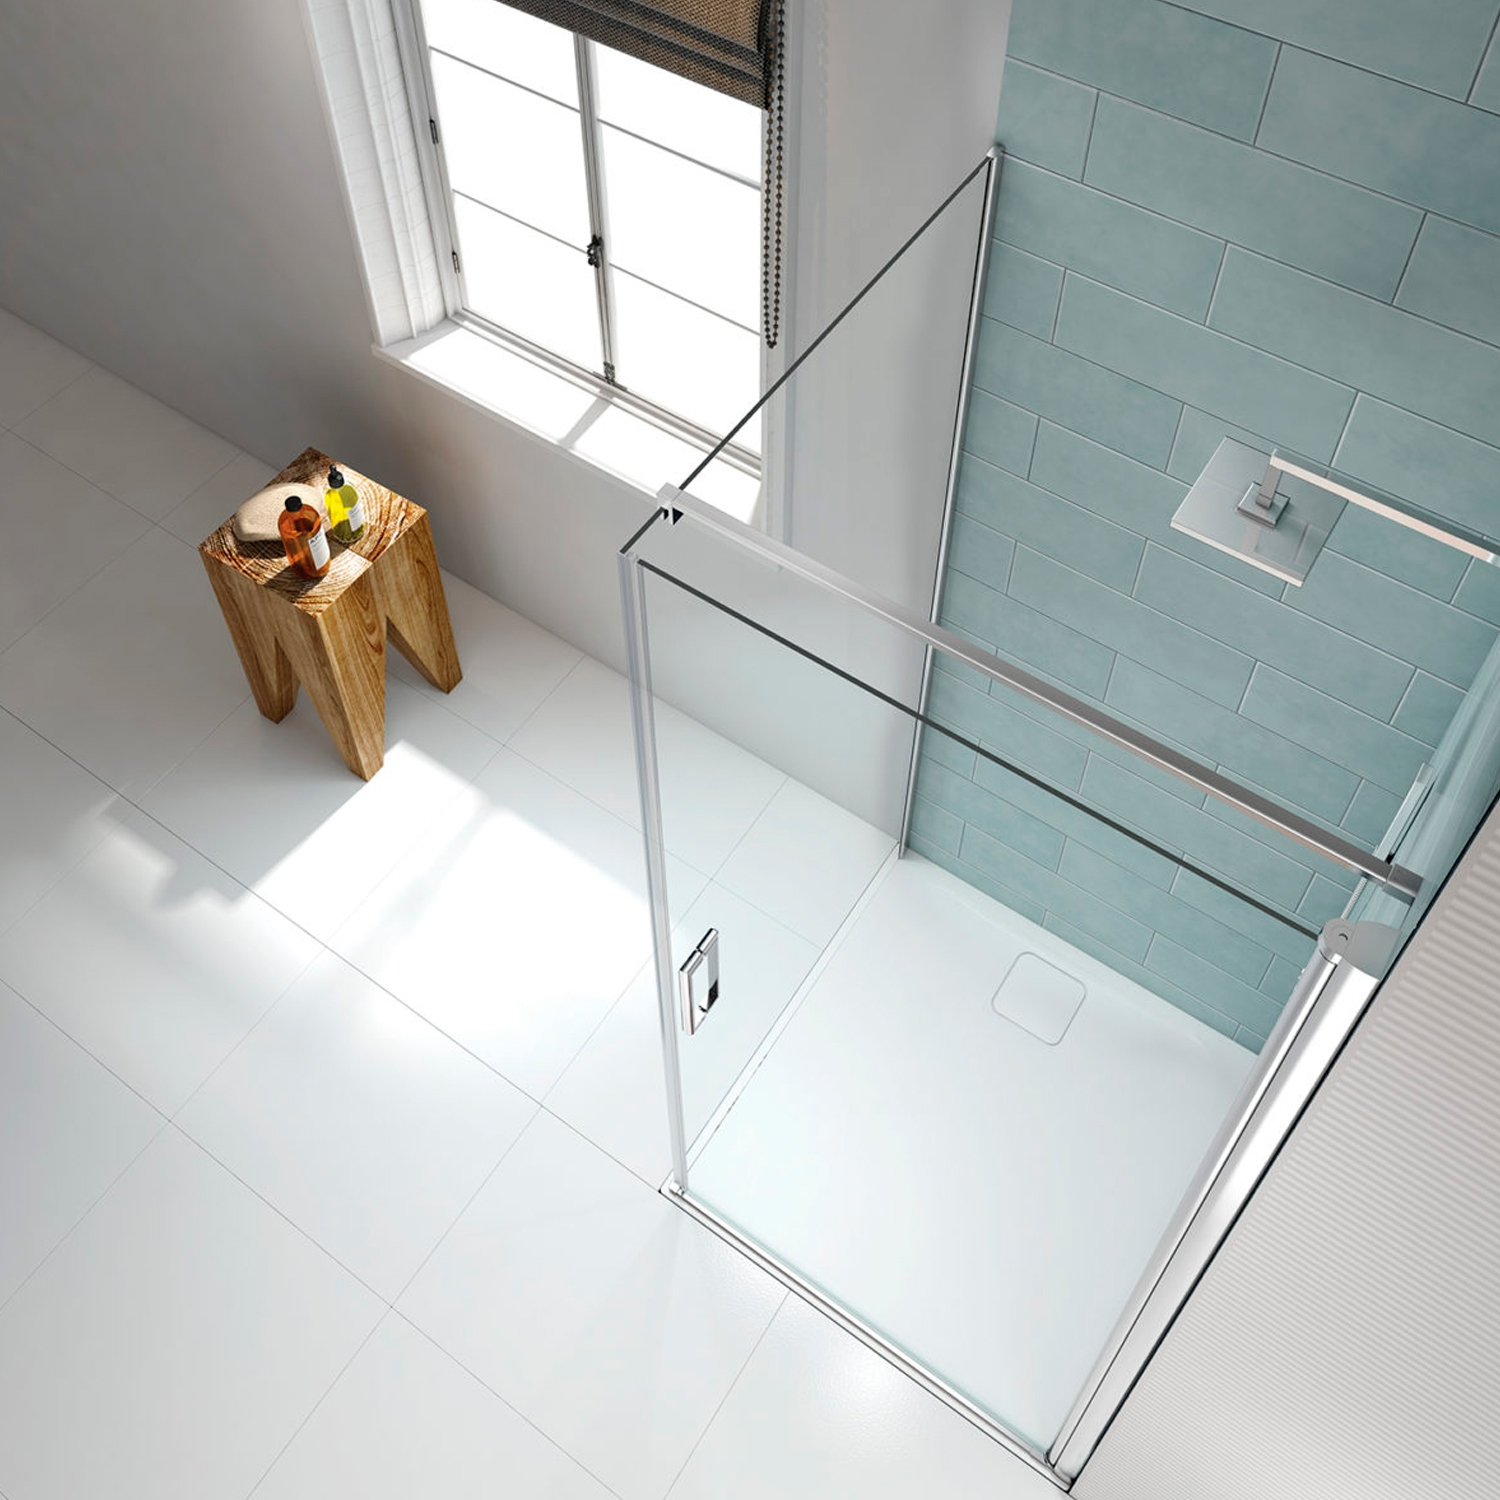 Merlyn 8 Series Frameless Pivot Shower Door 900mm with 900mm x 900mm Tray - 8mm Glass